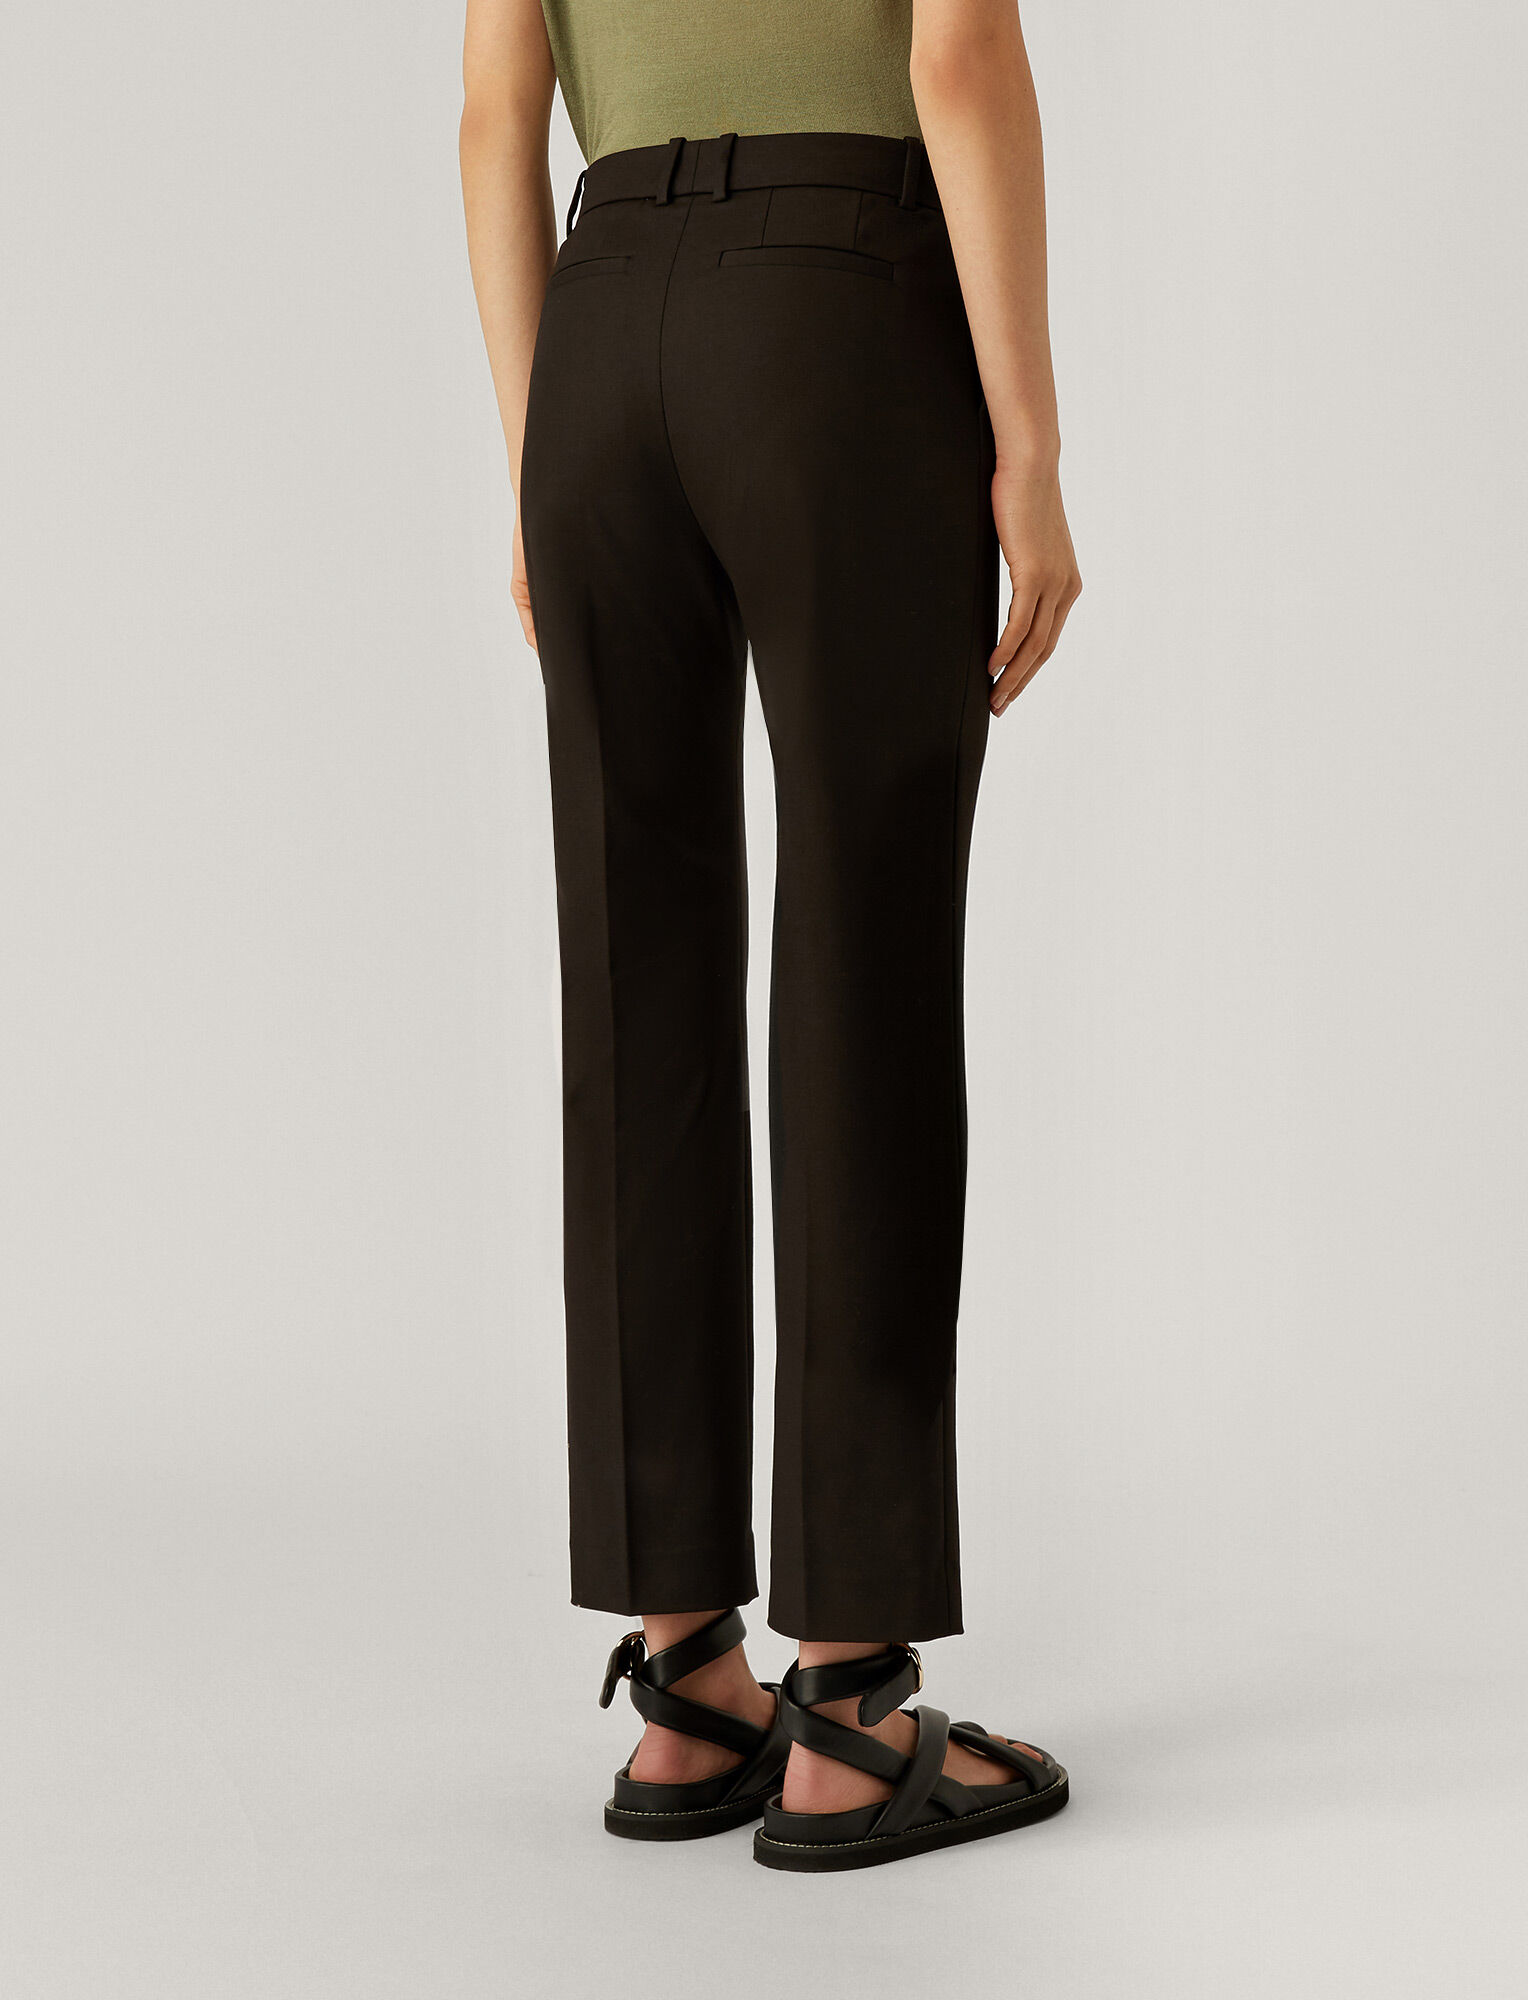 Joseph, Pantalon Coleman en double coton stretch, in BLACK